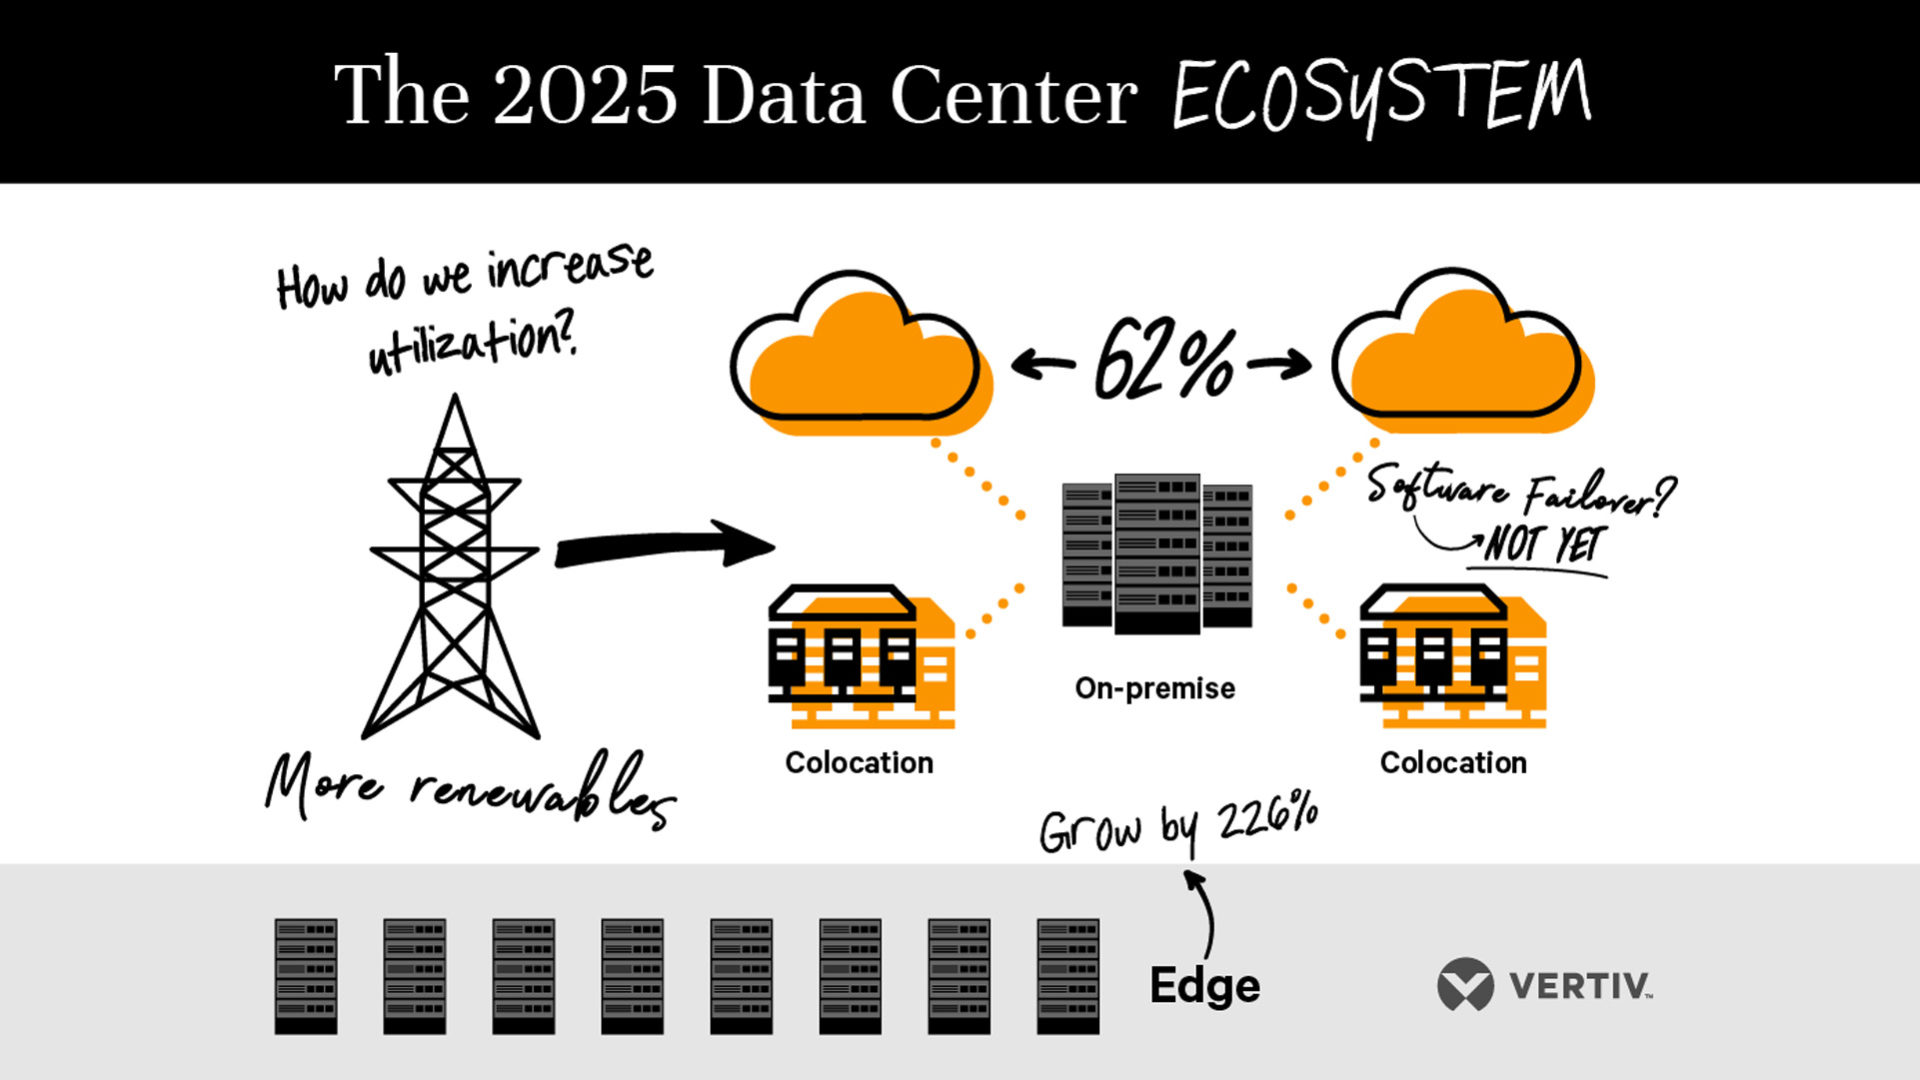 il data center del 2025